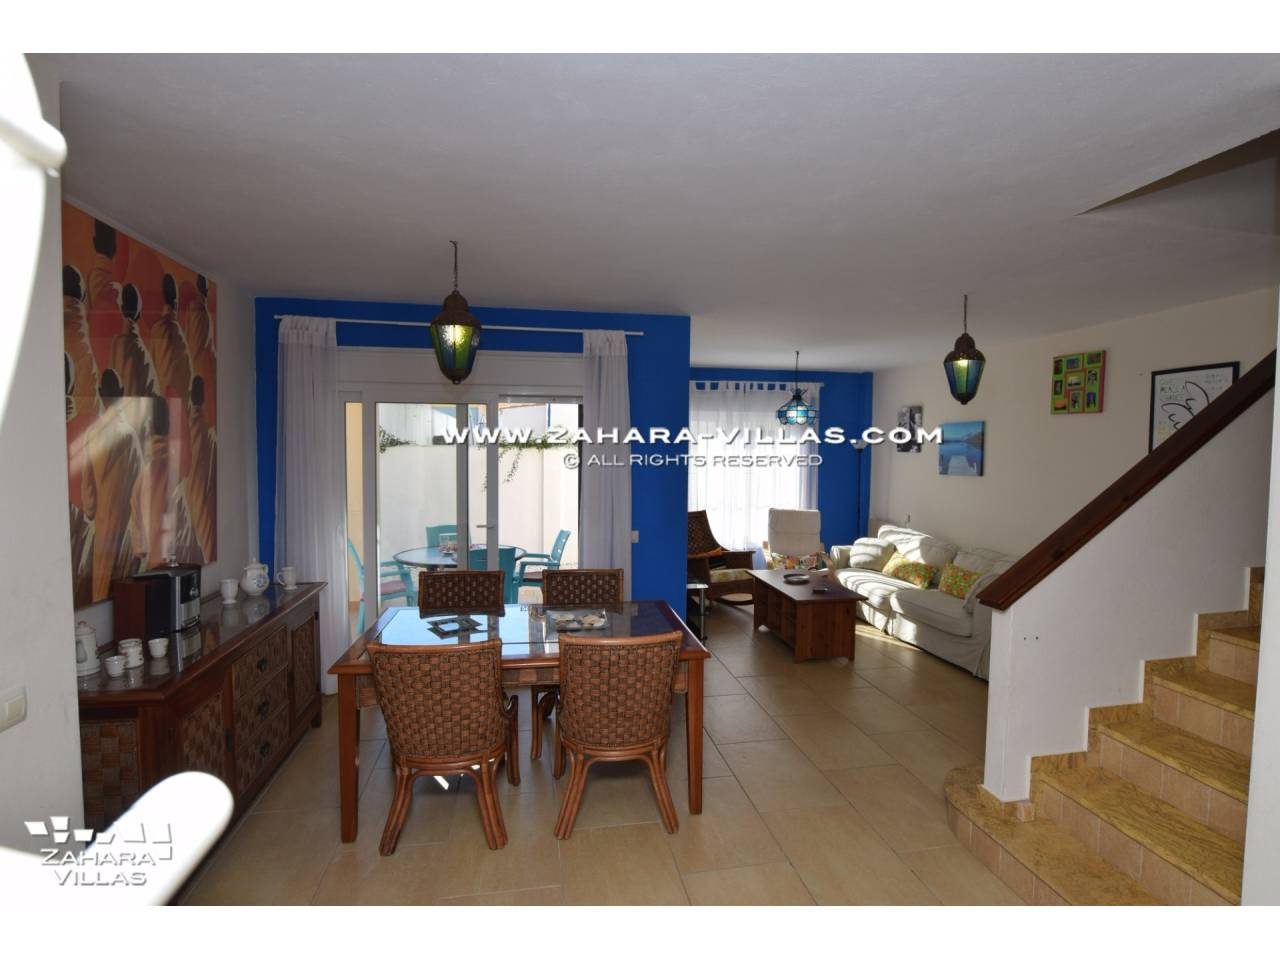 Imagen 4 de Semi-detached house for sale en Zahara de los Atunes